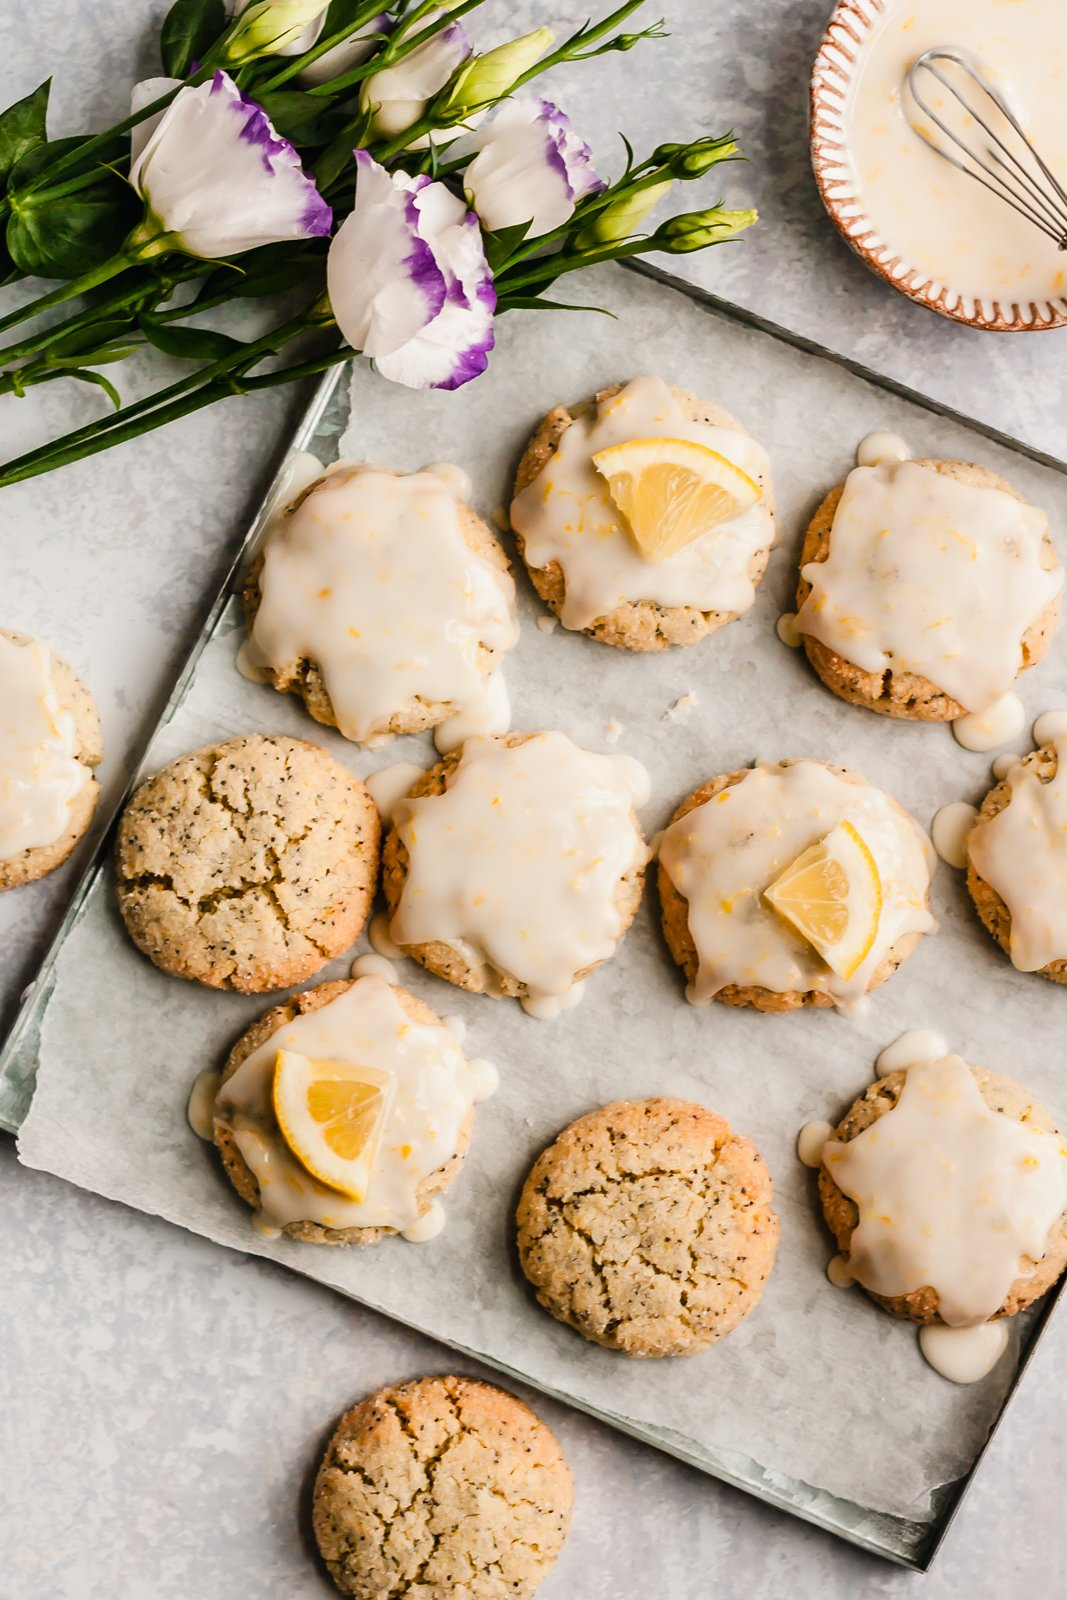 paleo lemon poppy seed cookies on a baking tray next to a bunch of flowers